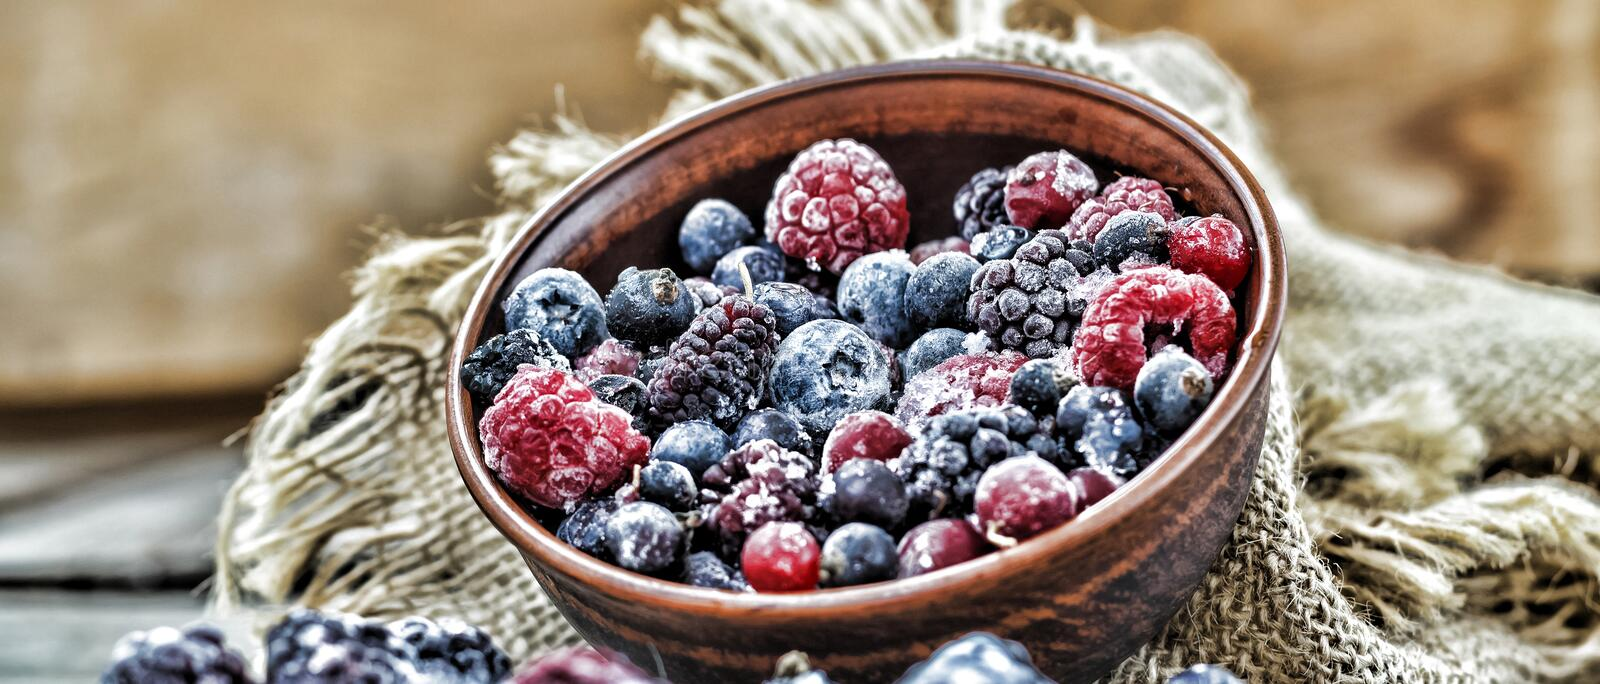 Frozen berries health food royalty free stock images